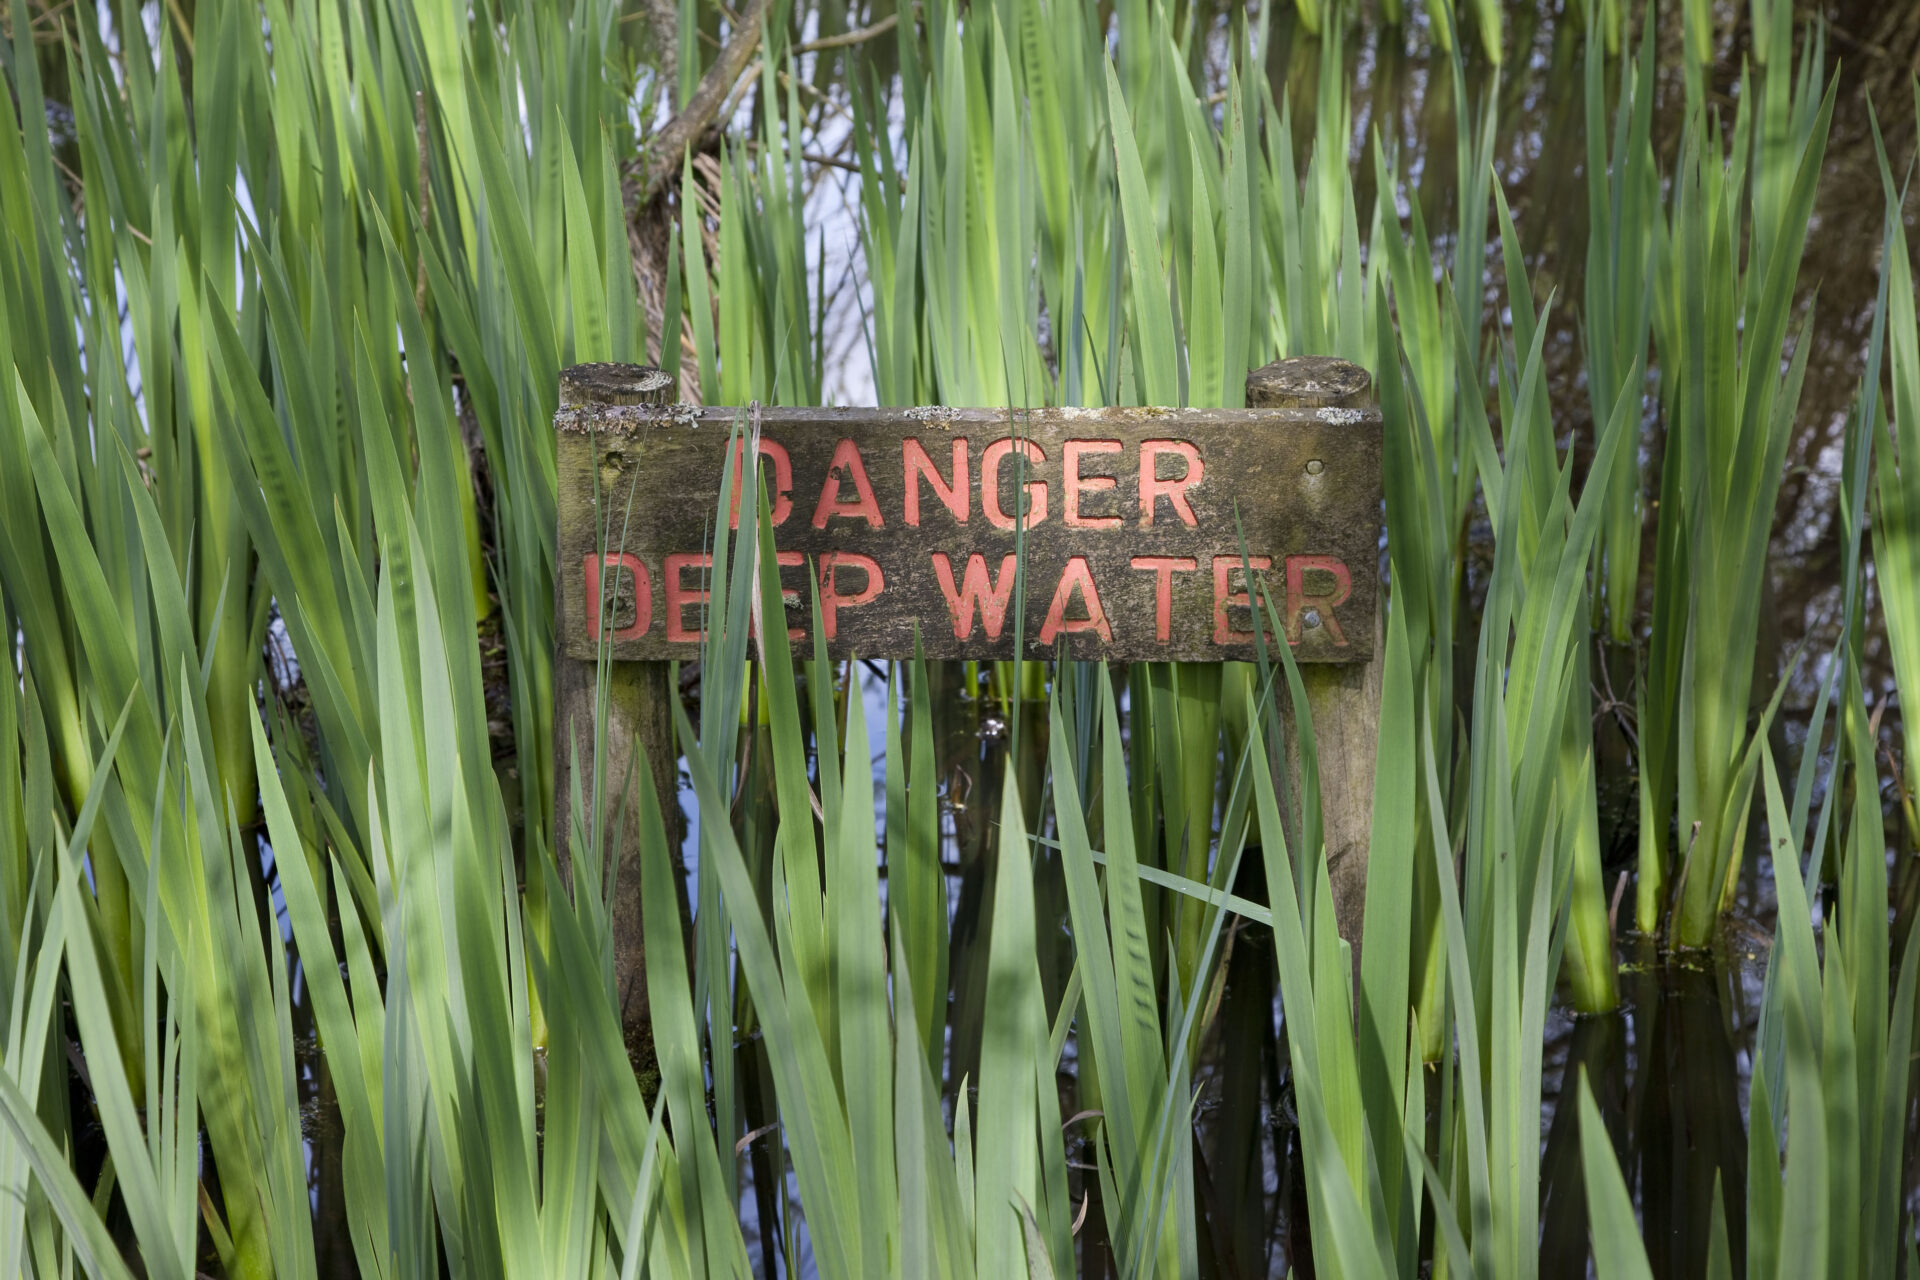 Danger Deep Water sign – Shaw & Shaw photography – Shaw & Shaw Photography campaign – Shaw and Shaw advertising photographers